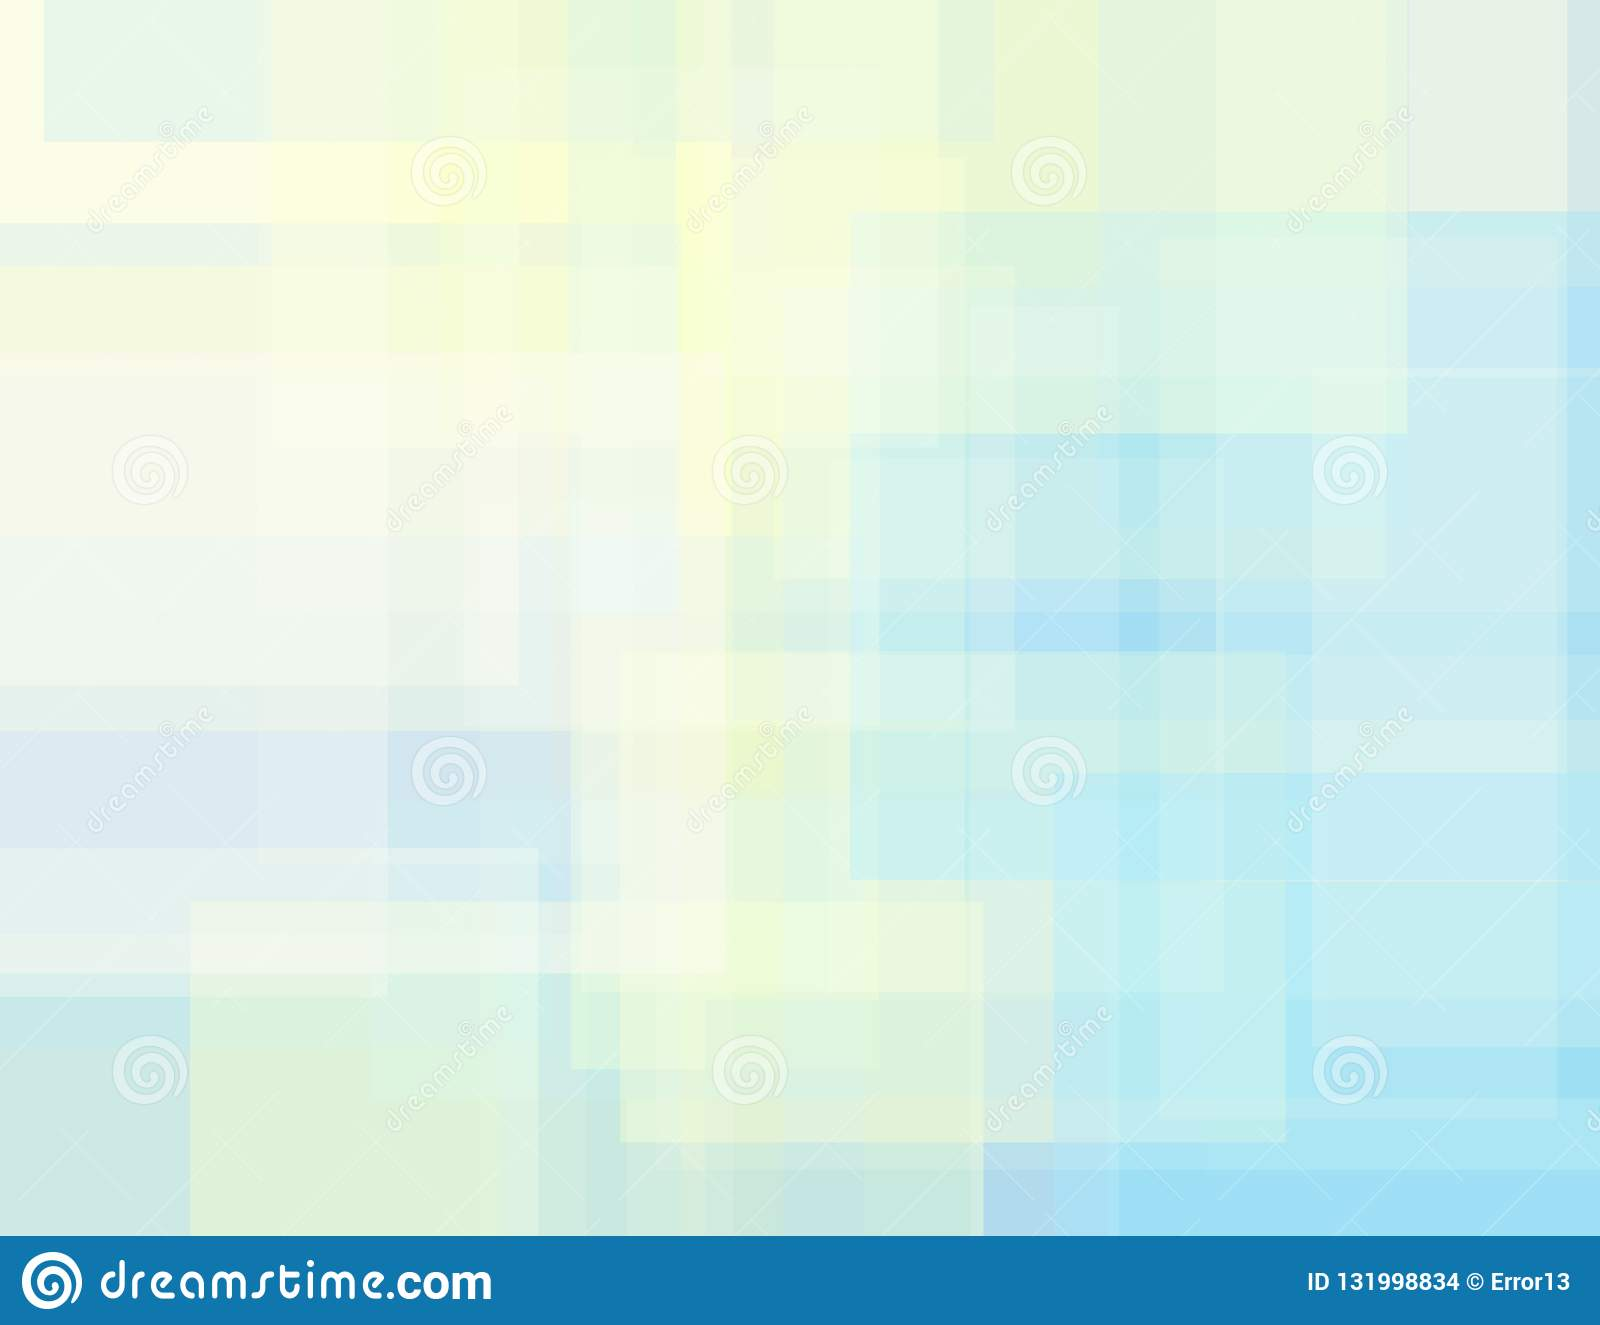 Subtle geometric background with cream and pale blue rectangles